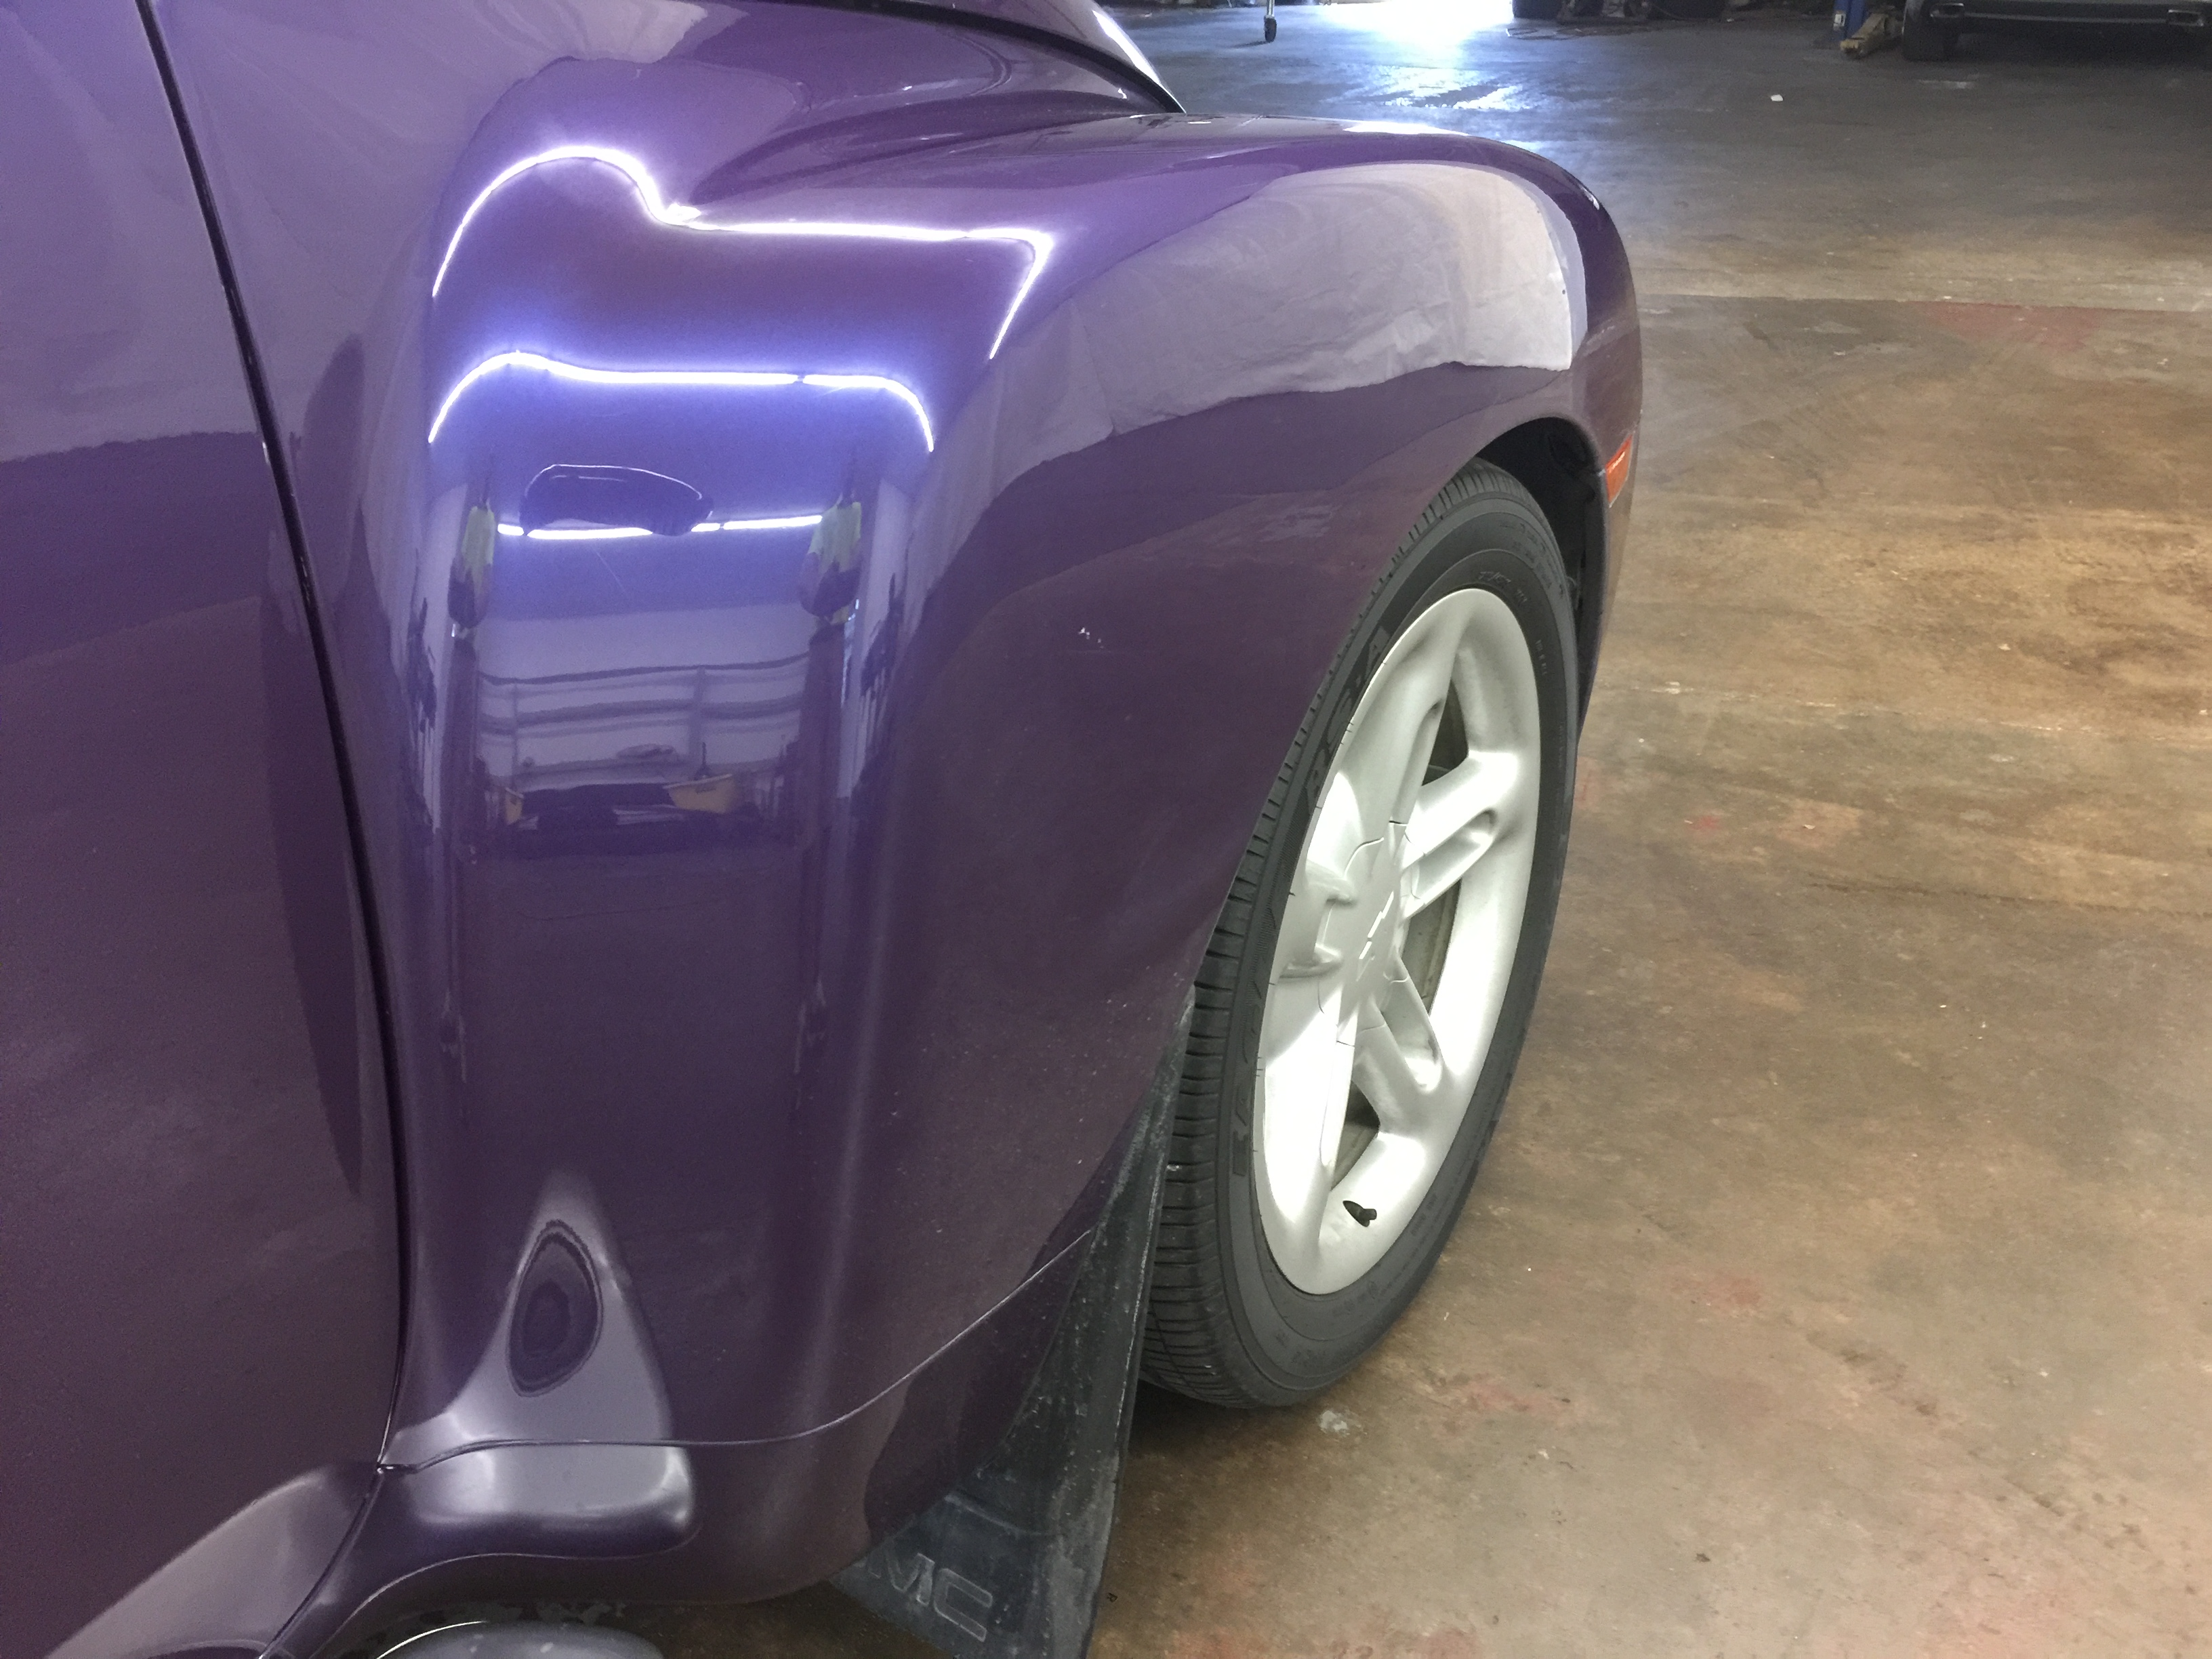 2004 Chevy SSR, Paintless Dent Removal on the passenger fender, removed by Michael Bocek out of Springfield, IL http://217dent.com